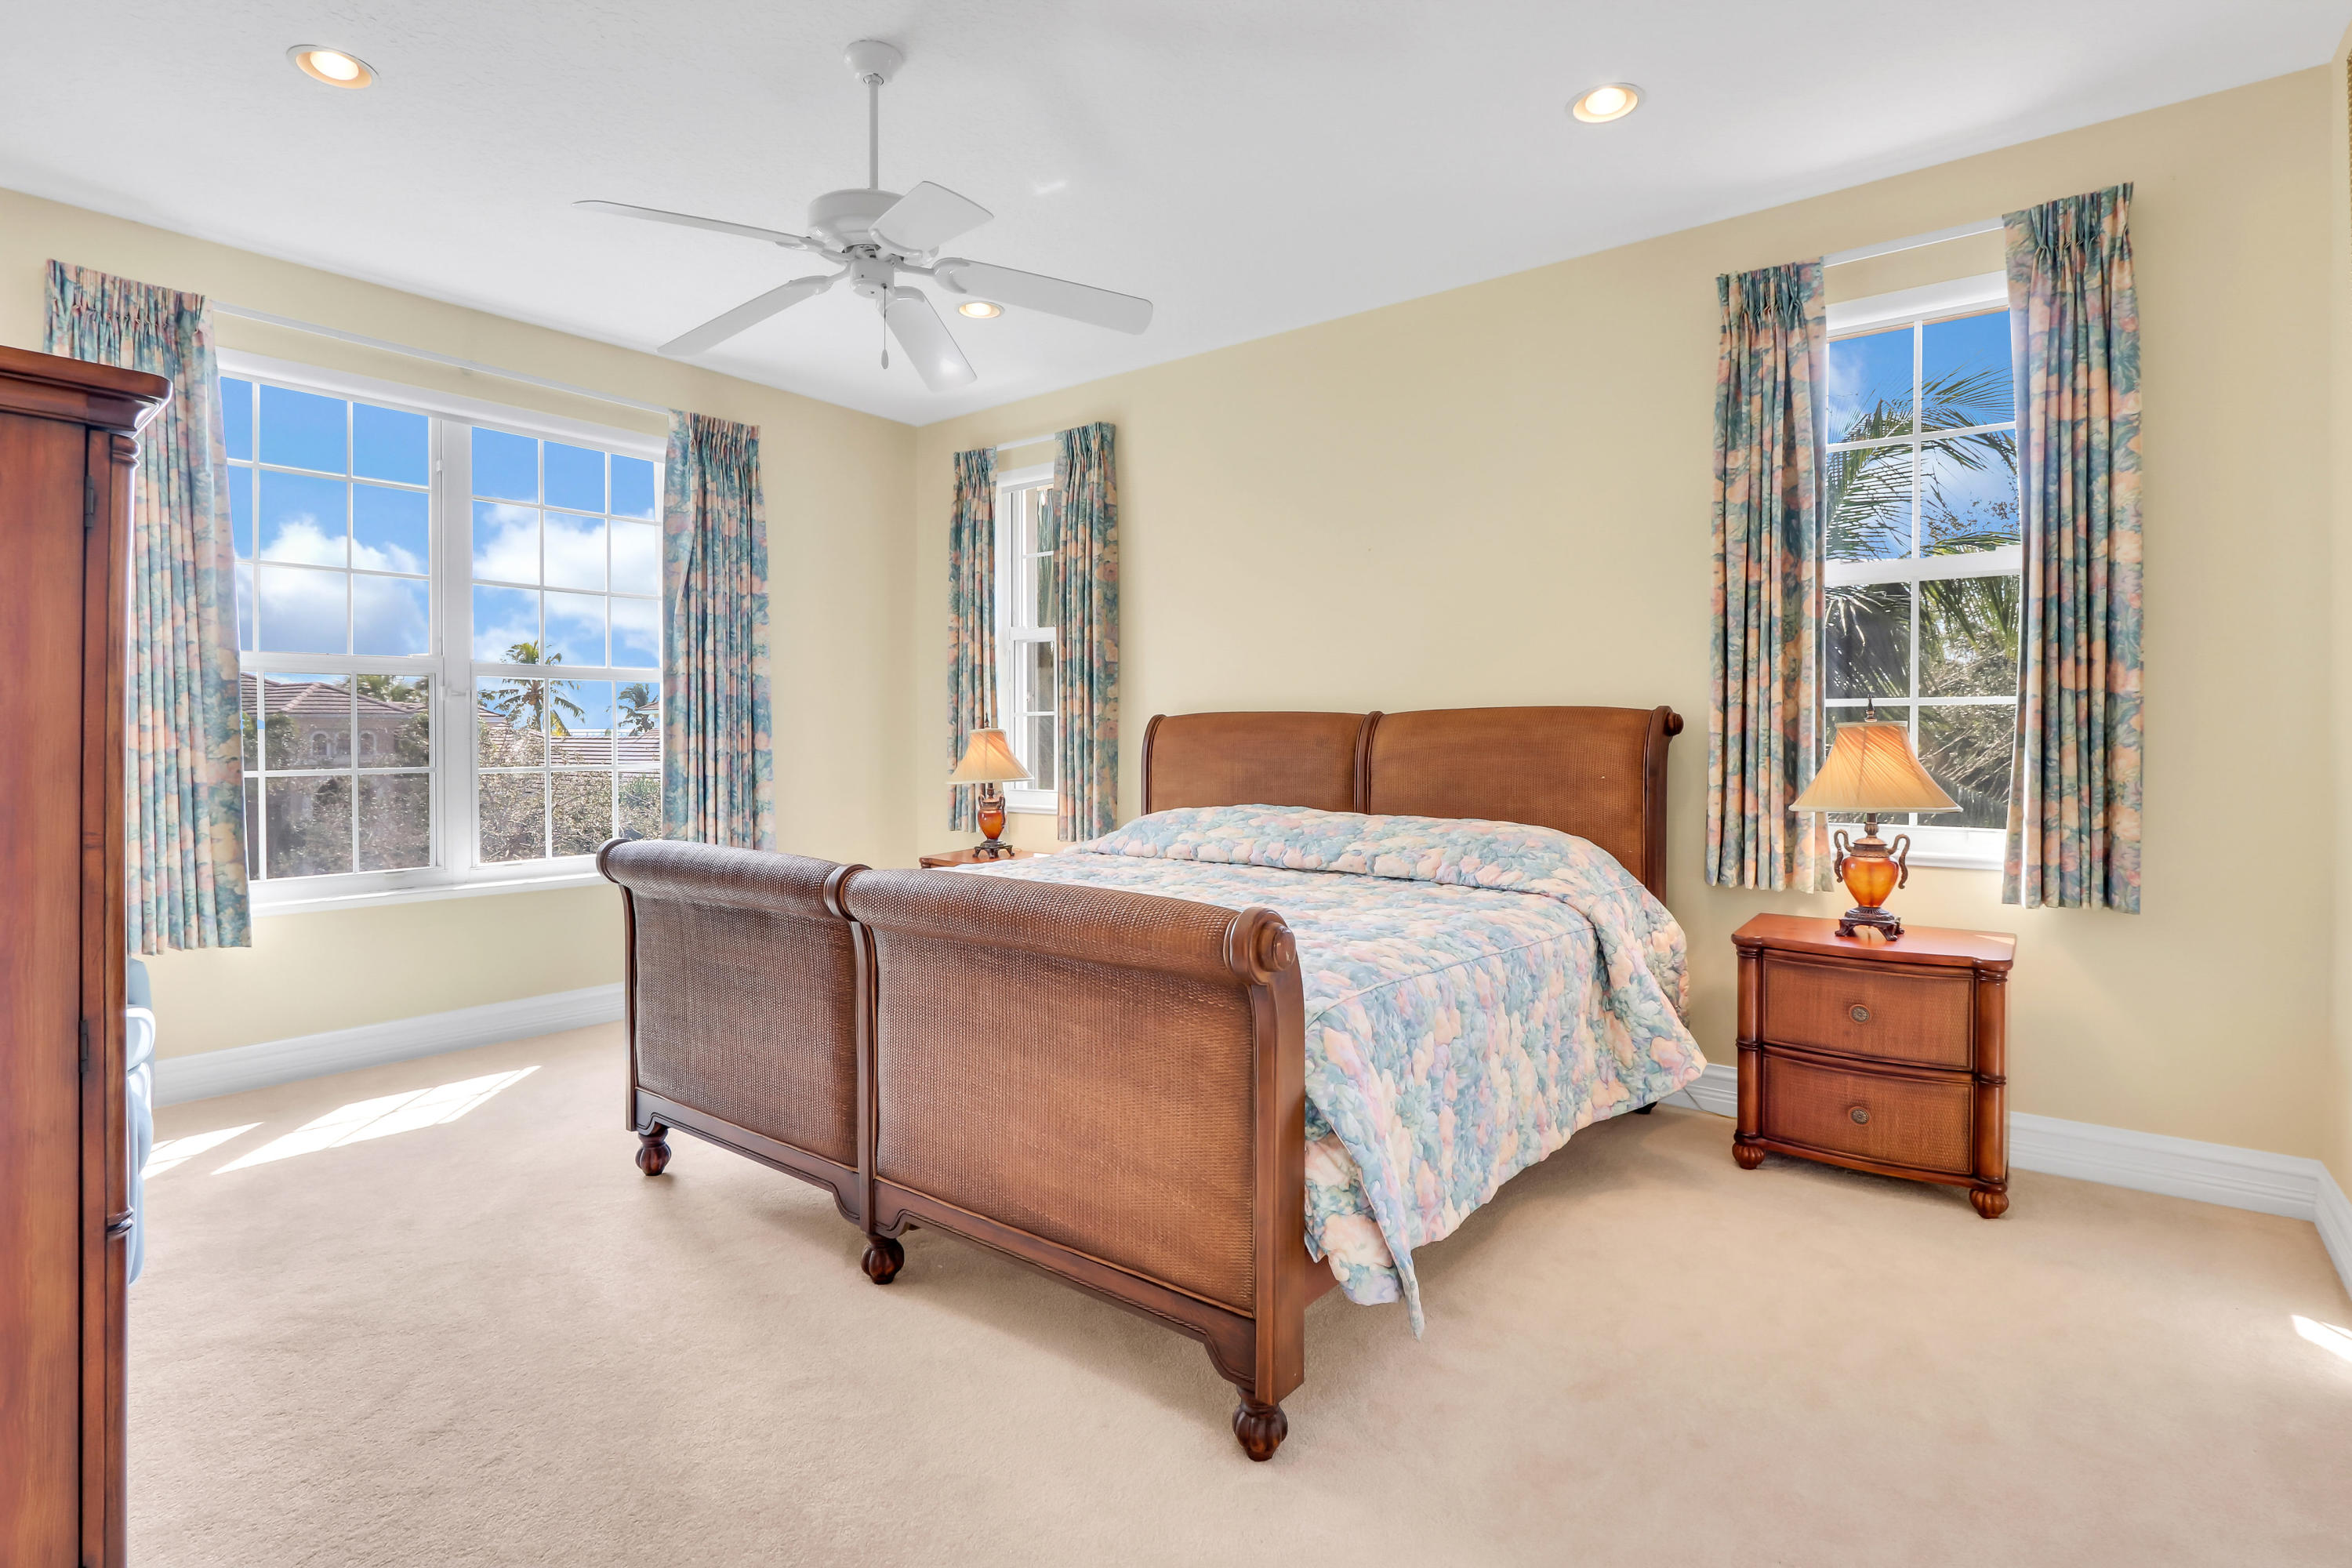 BAY POINTE HOMES FOR SALE